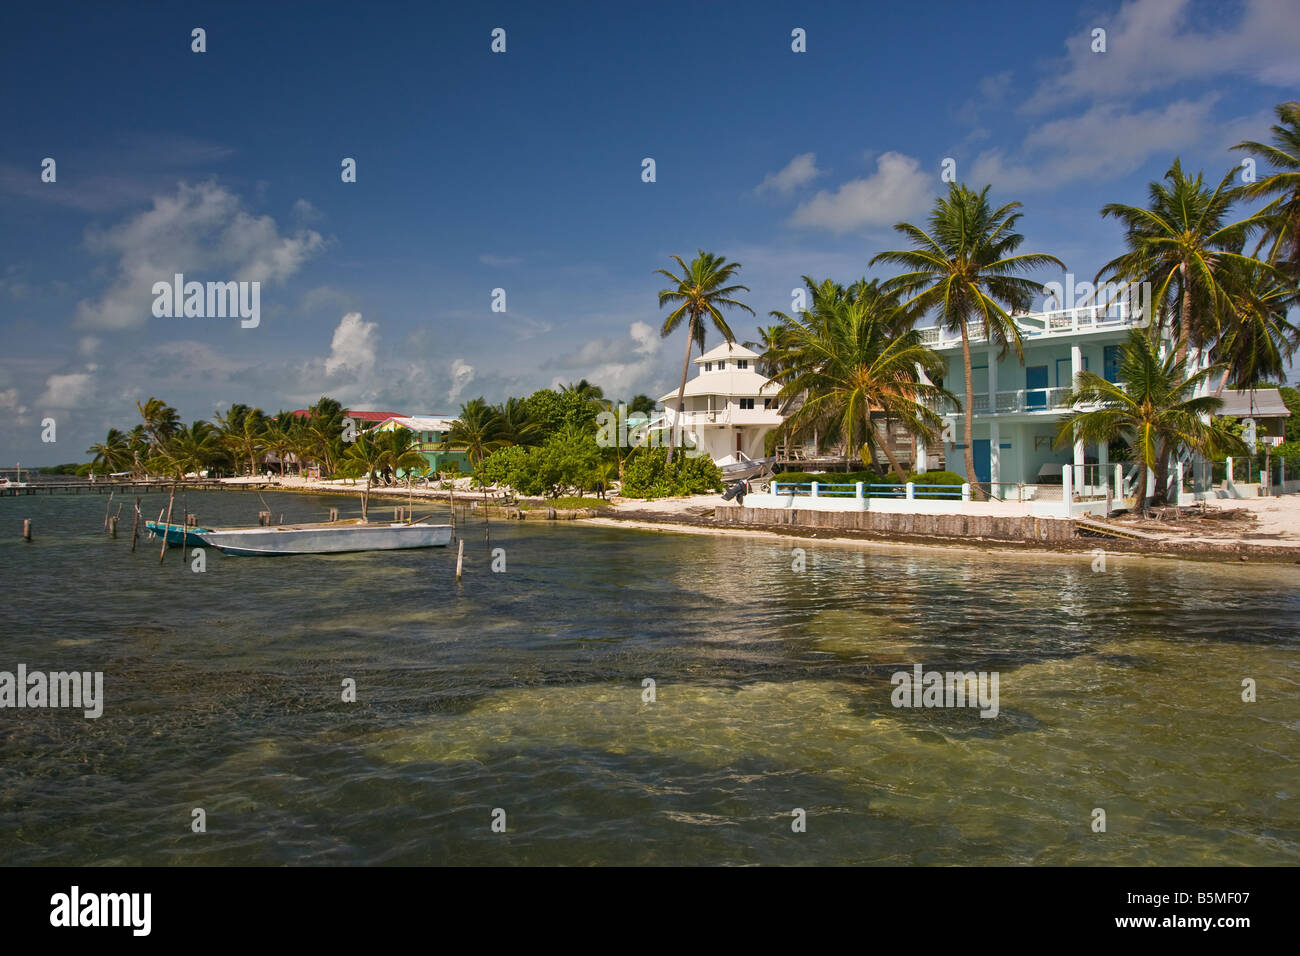 CAYE CAULKER BELIZE Hotels on the beach - Stock Image